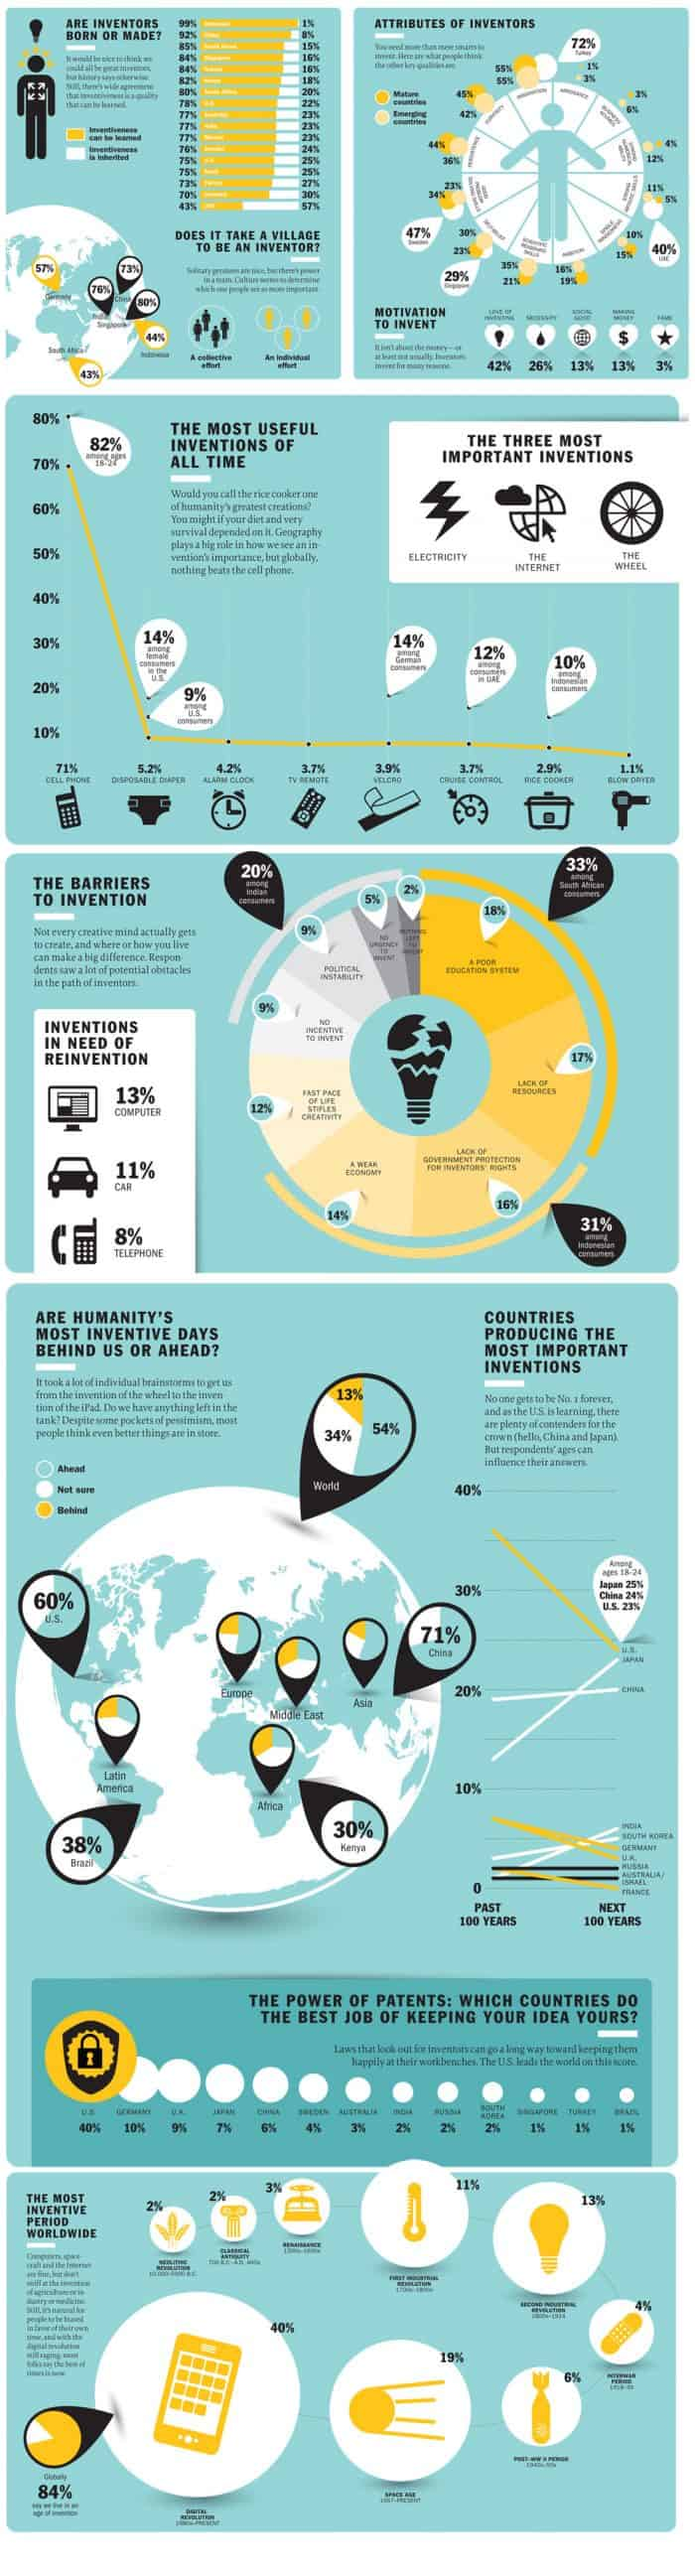 Results from a poll about the most important human inventions translated into infographic.